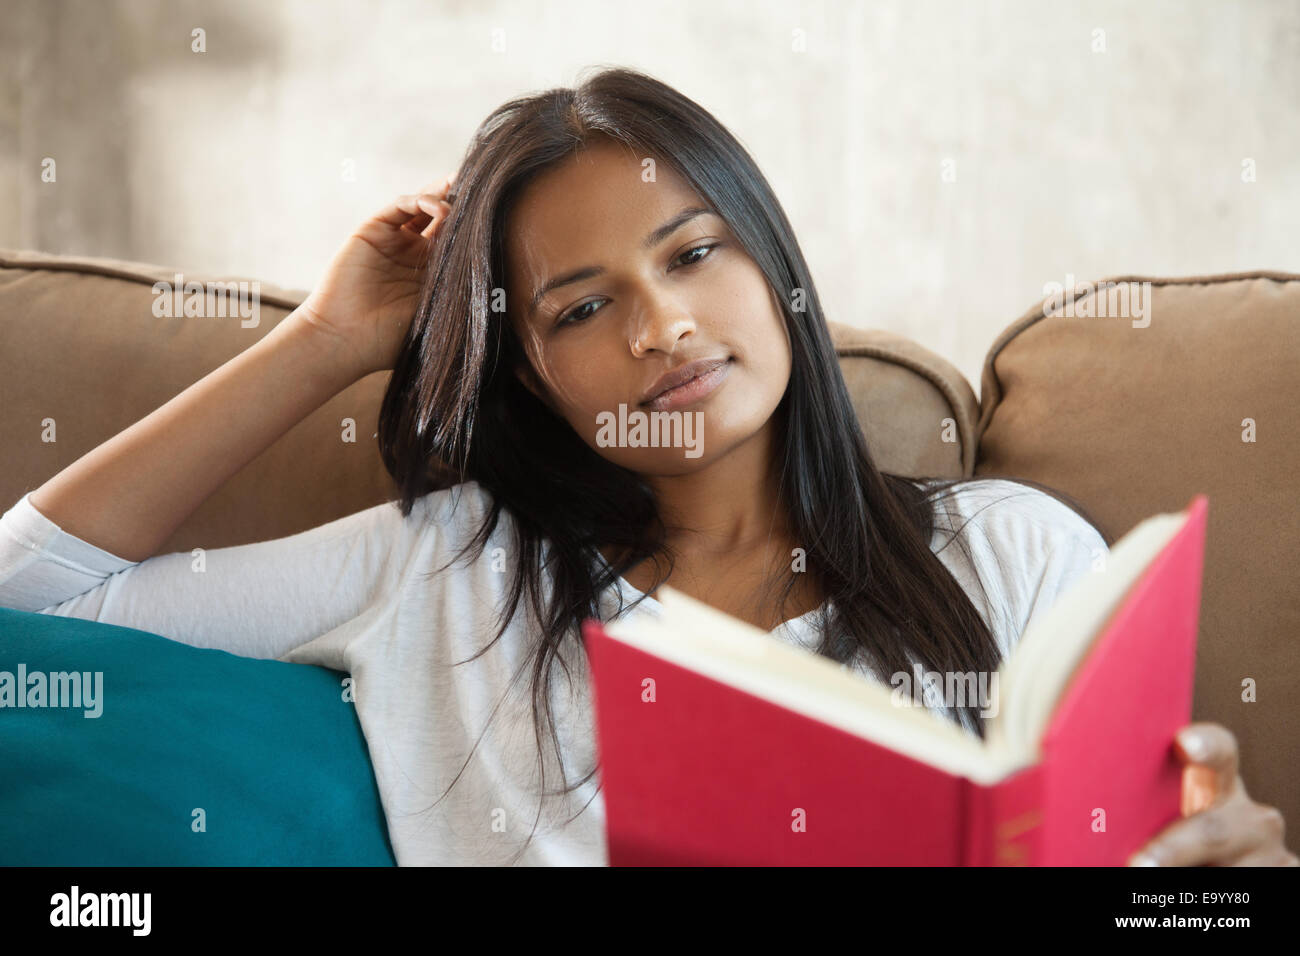 Woman Reading book at home Photo Stock